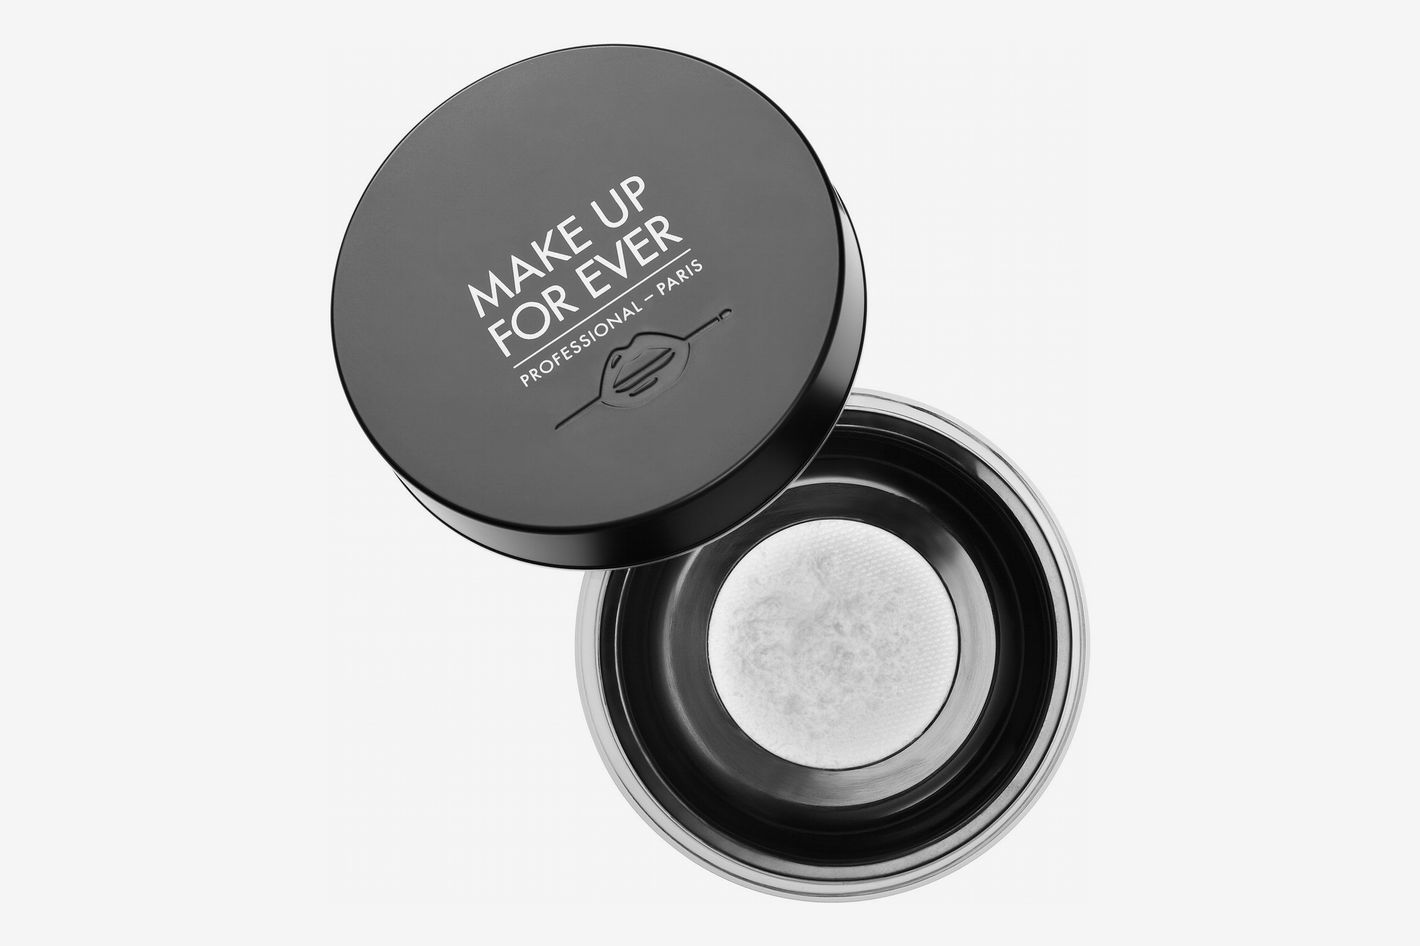 Makeup Forever Ultra HD Loose Powder